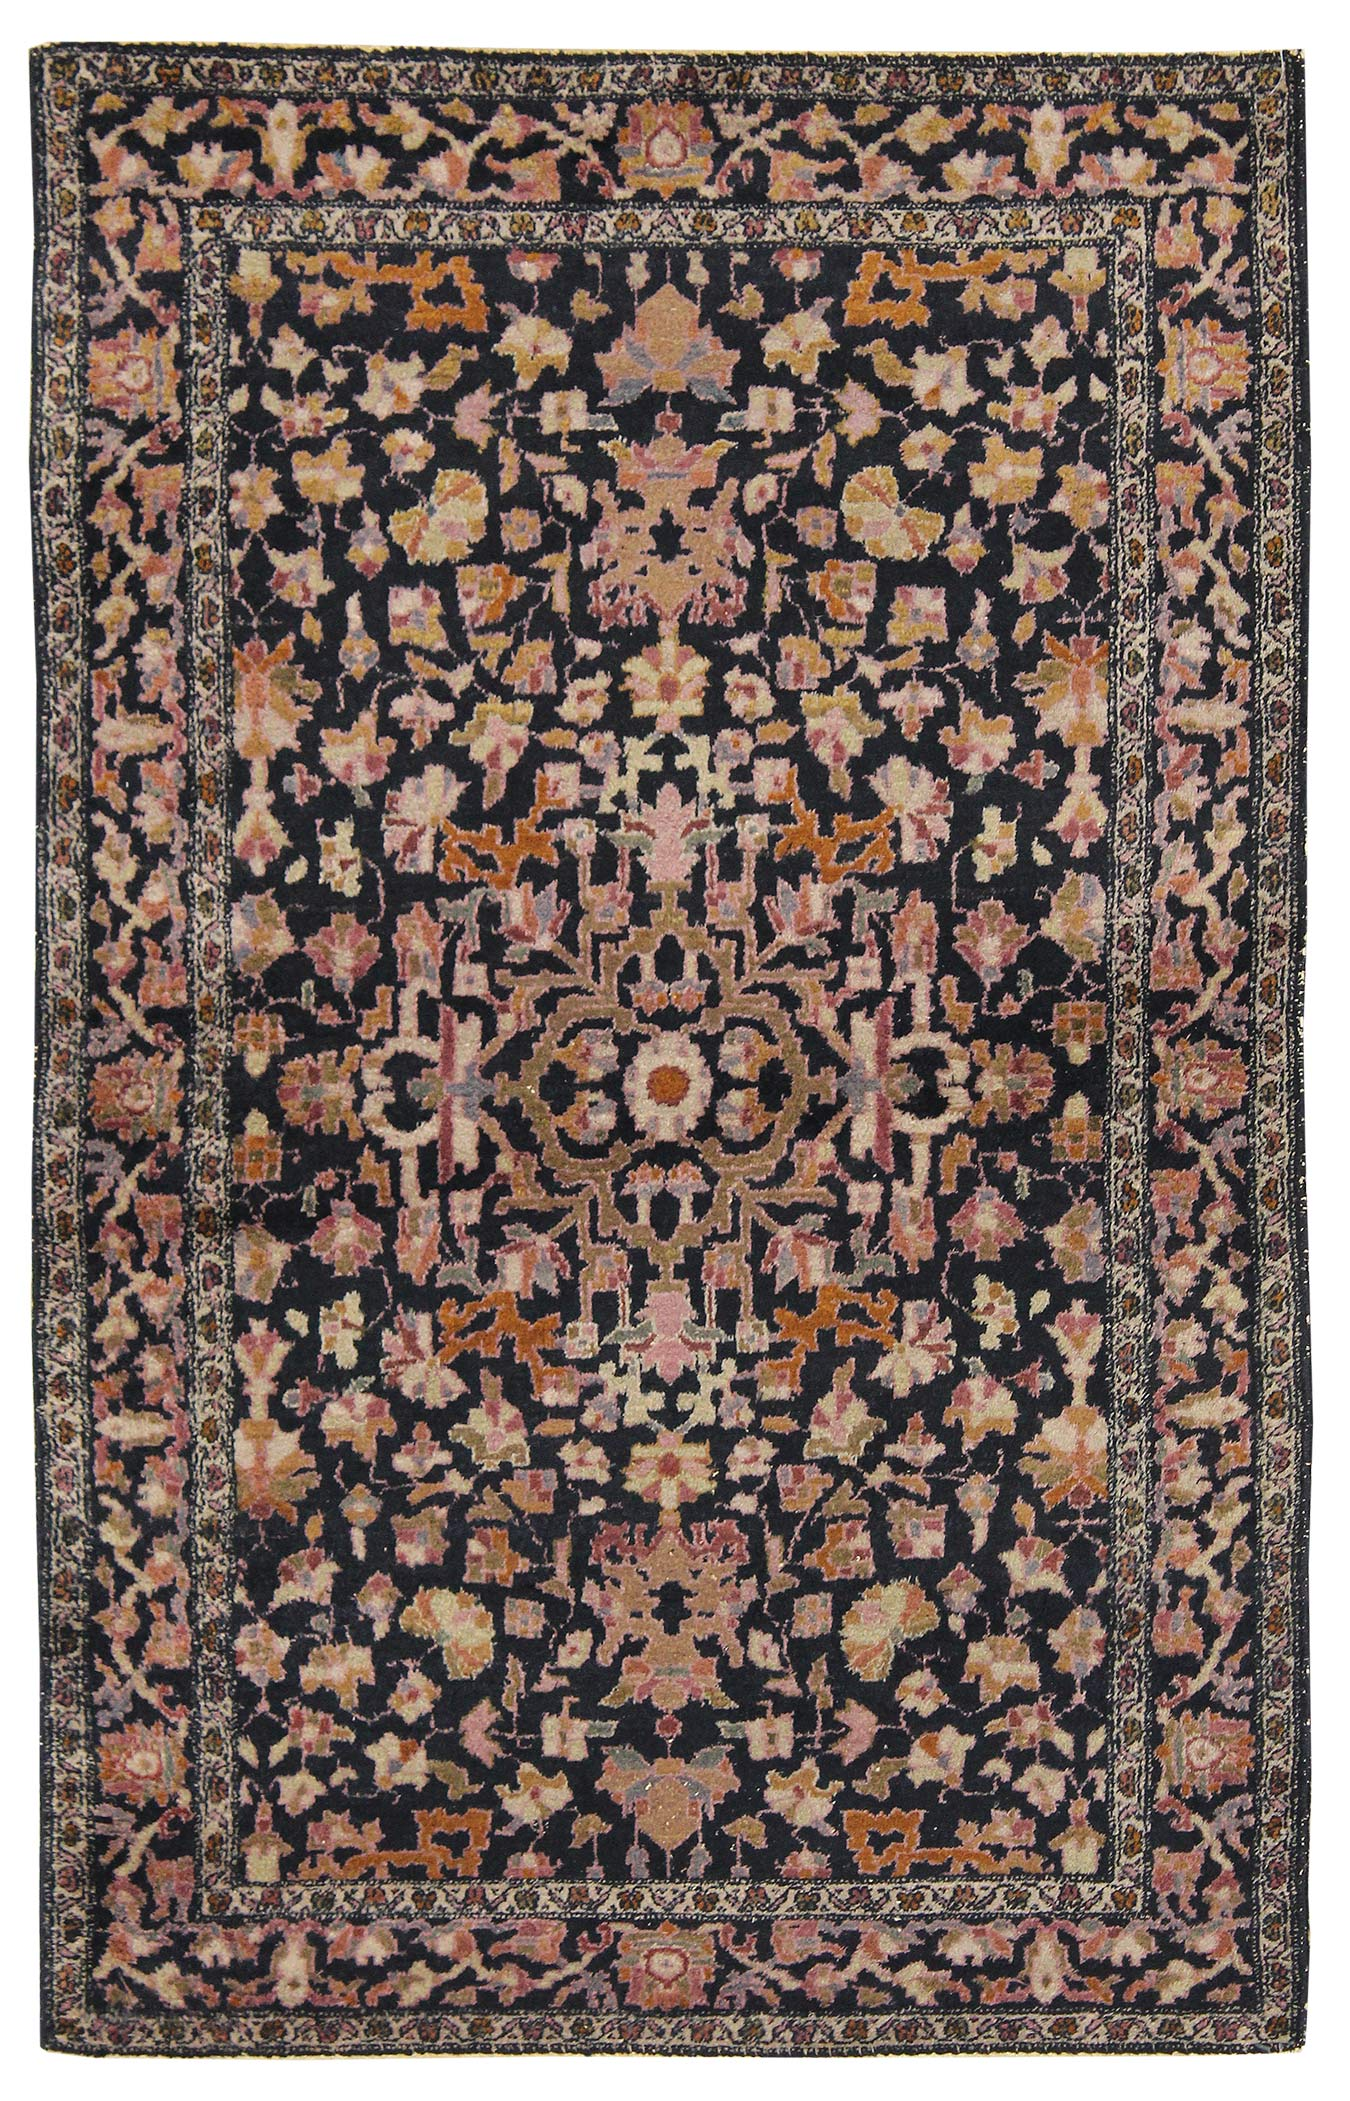 Antique Amritsar Handwoven Traditional Rug